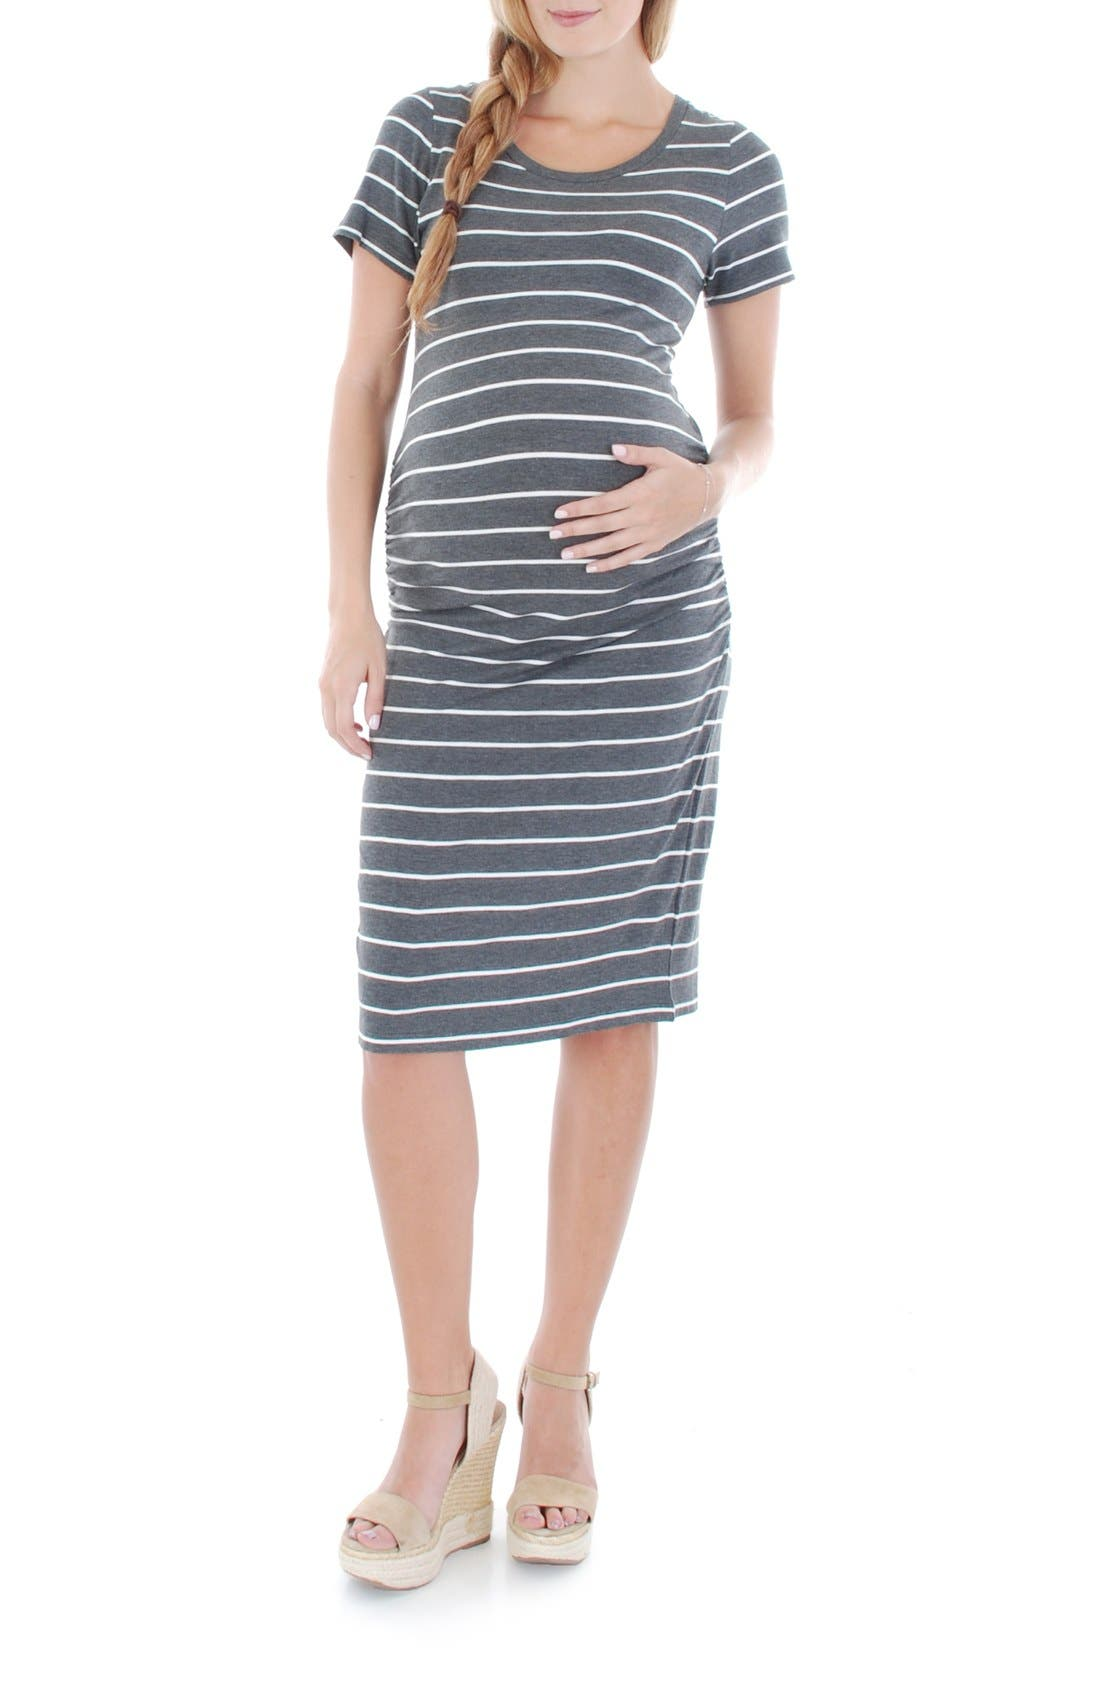 Alternate Image 1 Selected - Everly Grey 'Camila' Stripe Maternity Dress